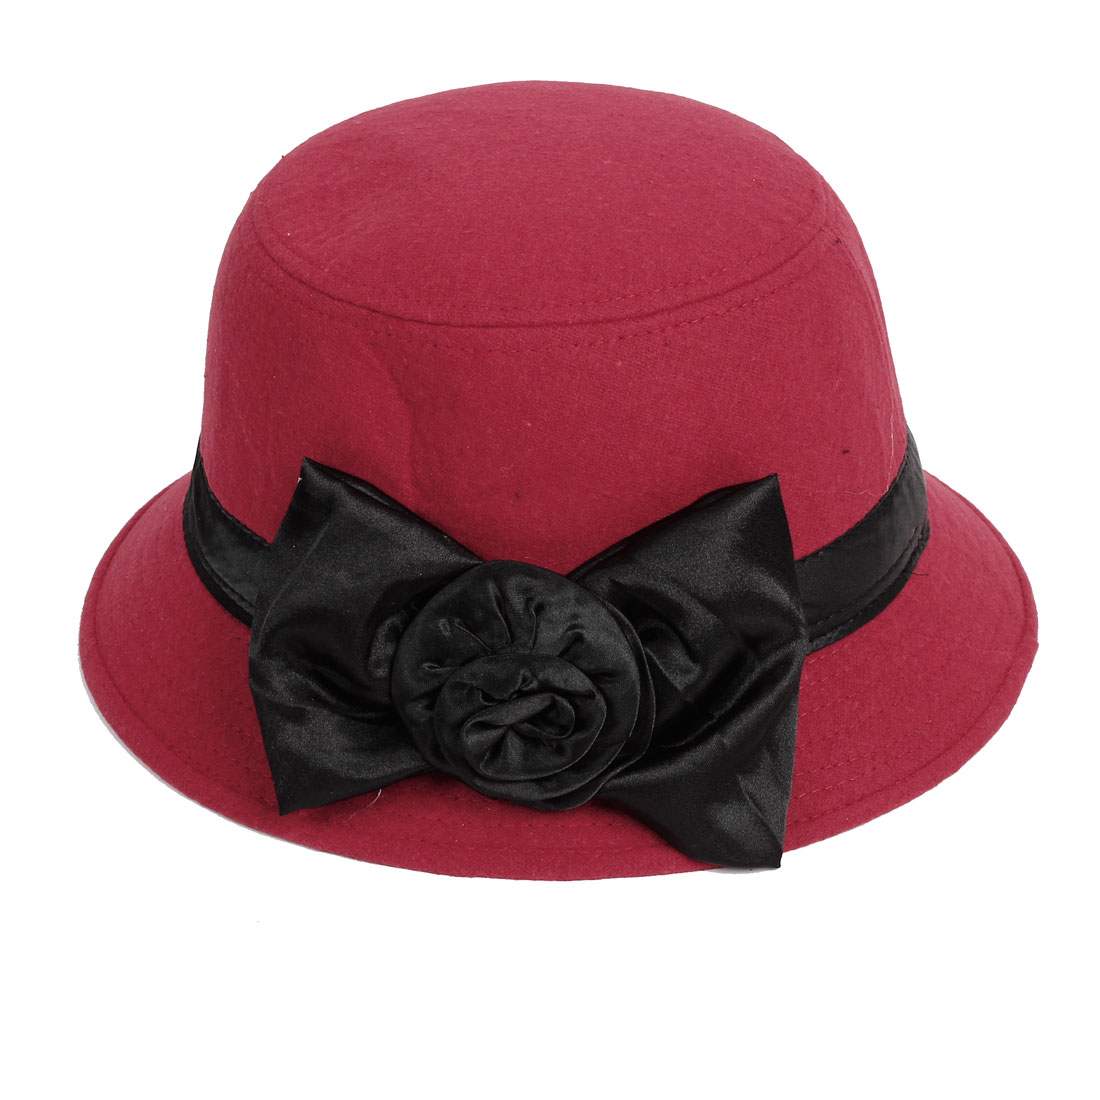 Flower Bowknot Accent Woolen Cloche Bucket Hat Red L for Ladies